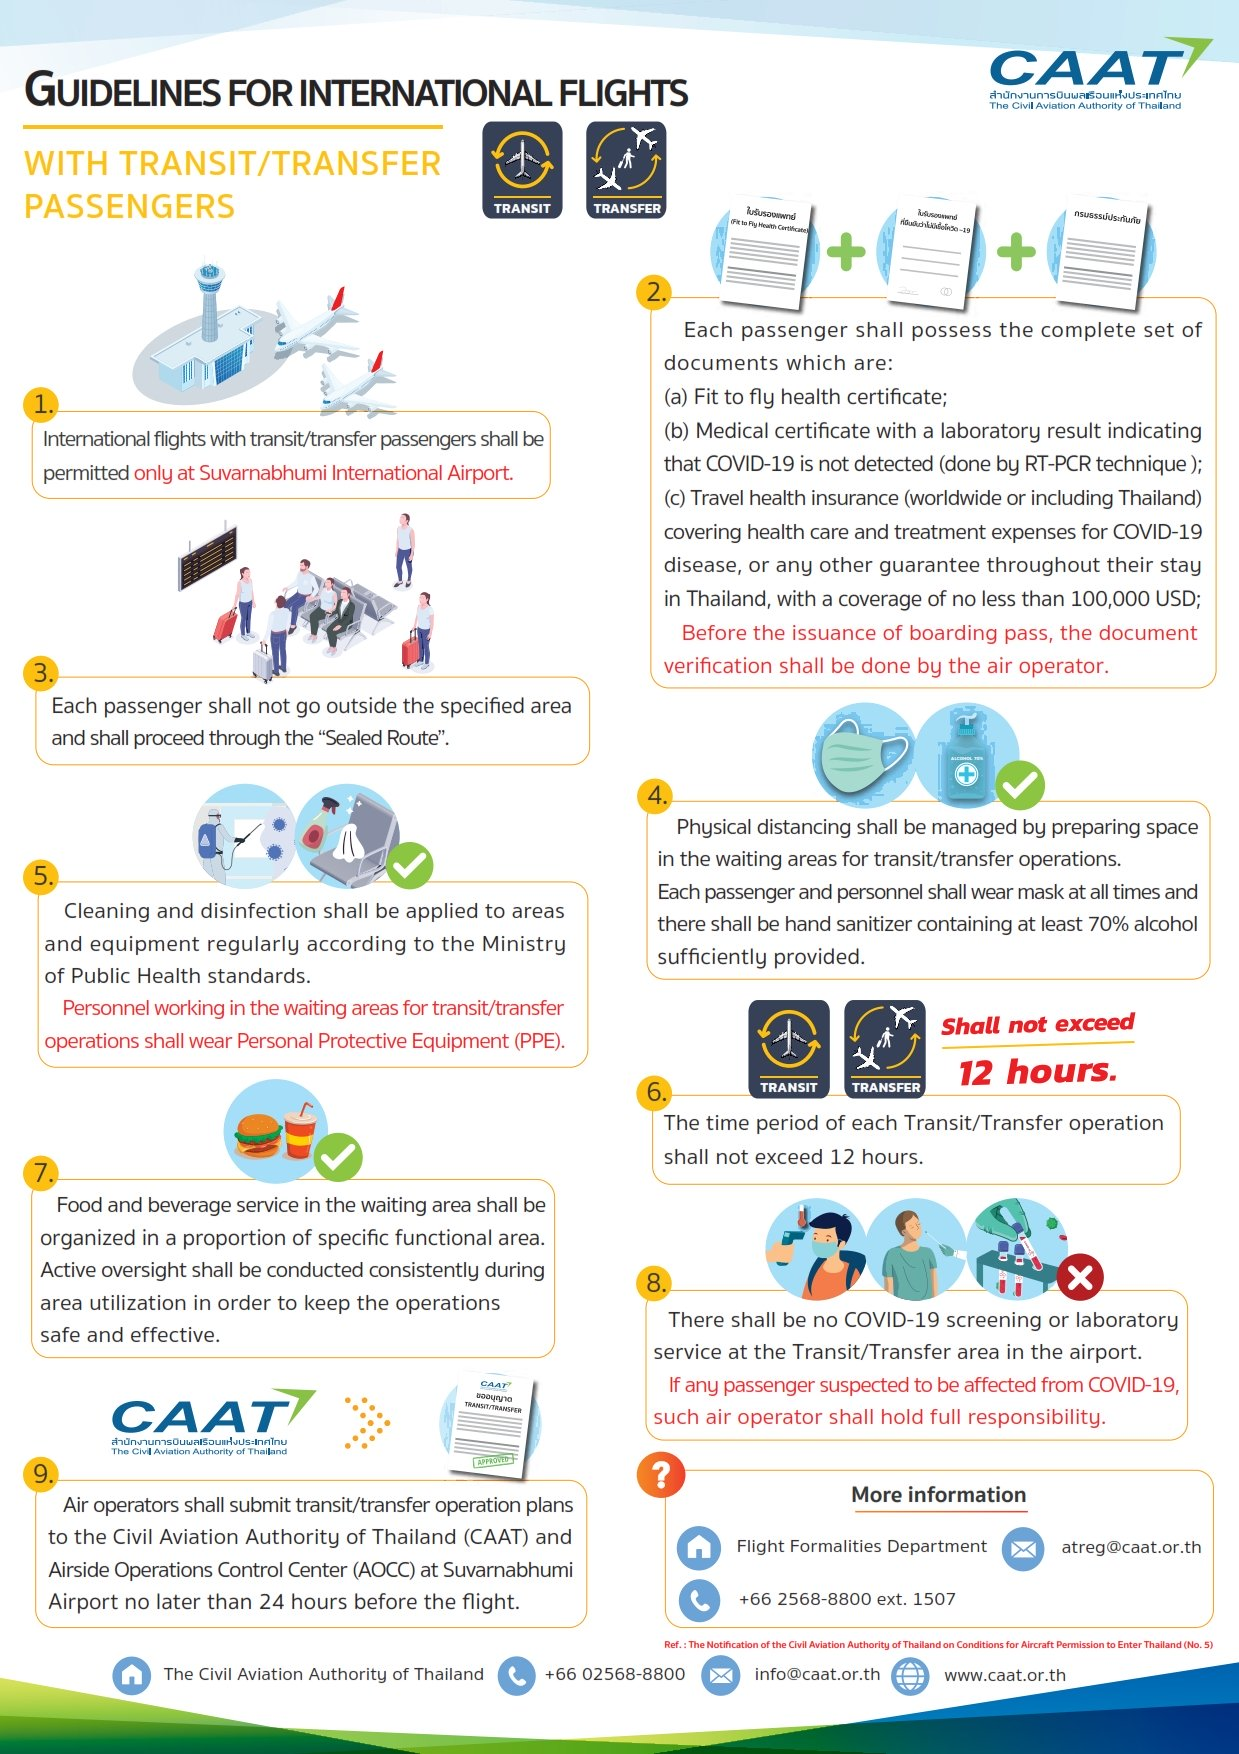 Thailand quarantine and entry conditions-caat-infographic-guidelines-international-flight-transit